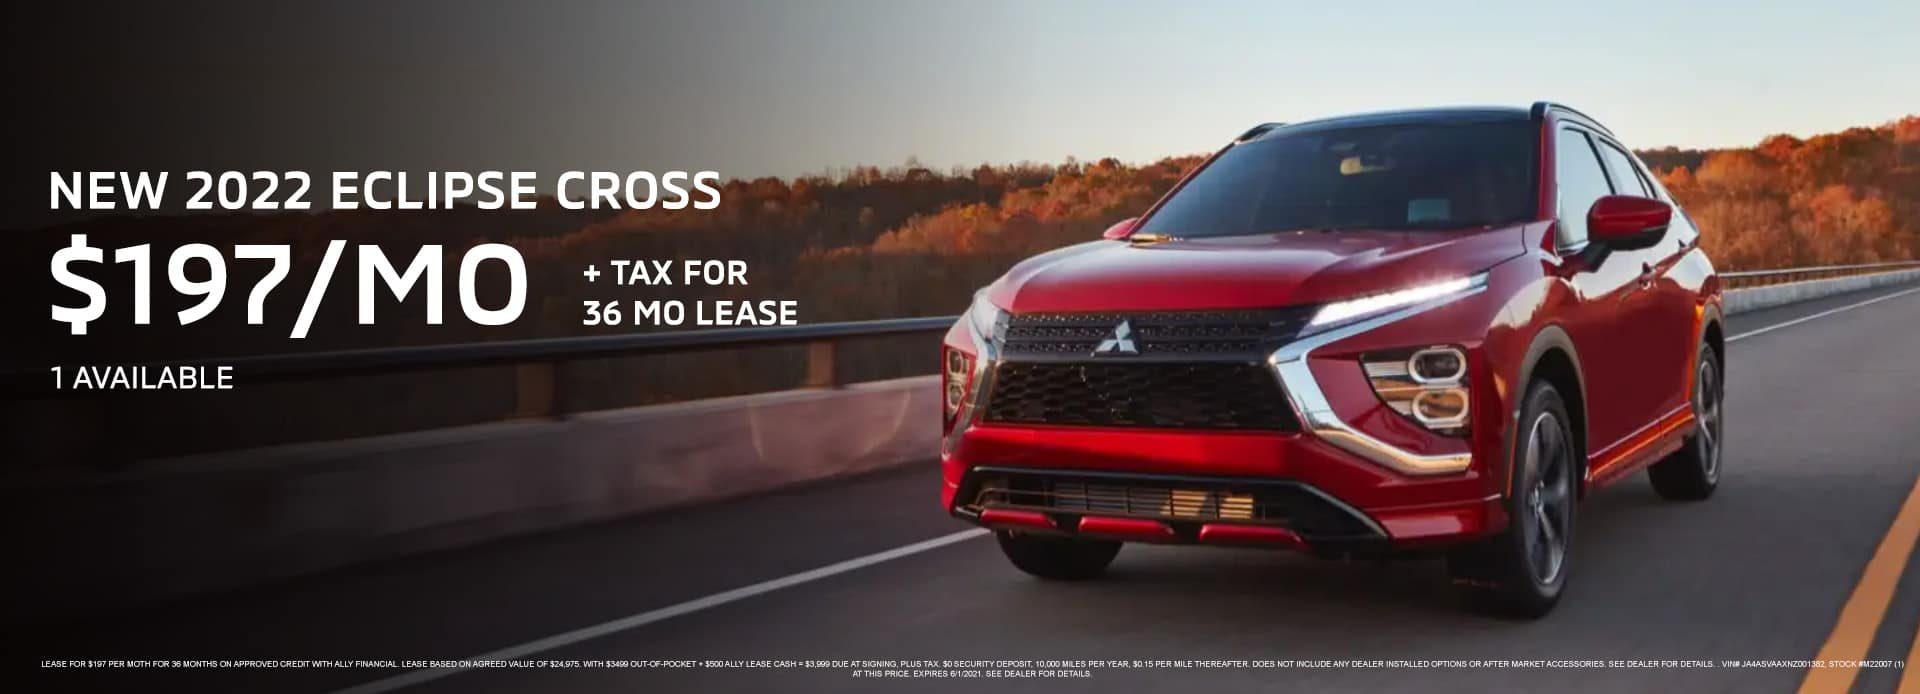 New 2022 ECLIPSE CROSS (1) AVAILABLE $197 per mo. + Tax for 36 mo Lease